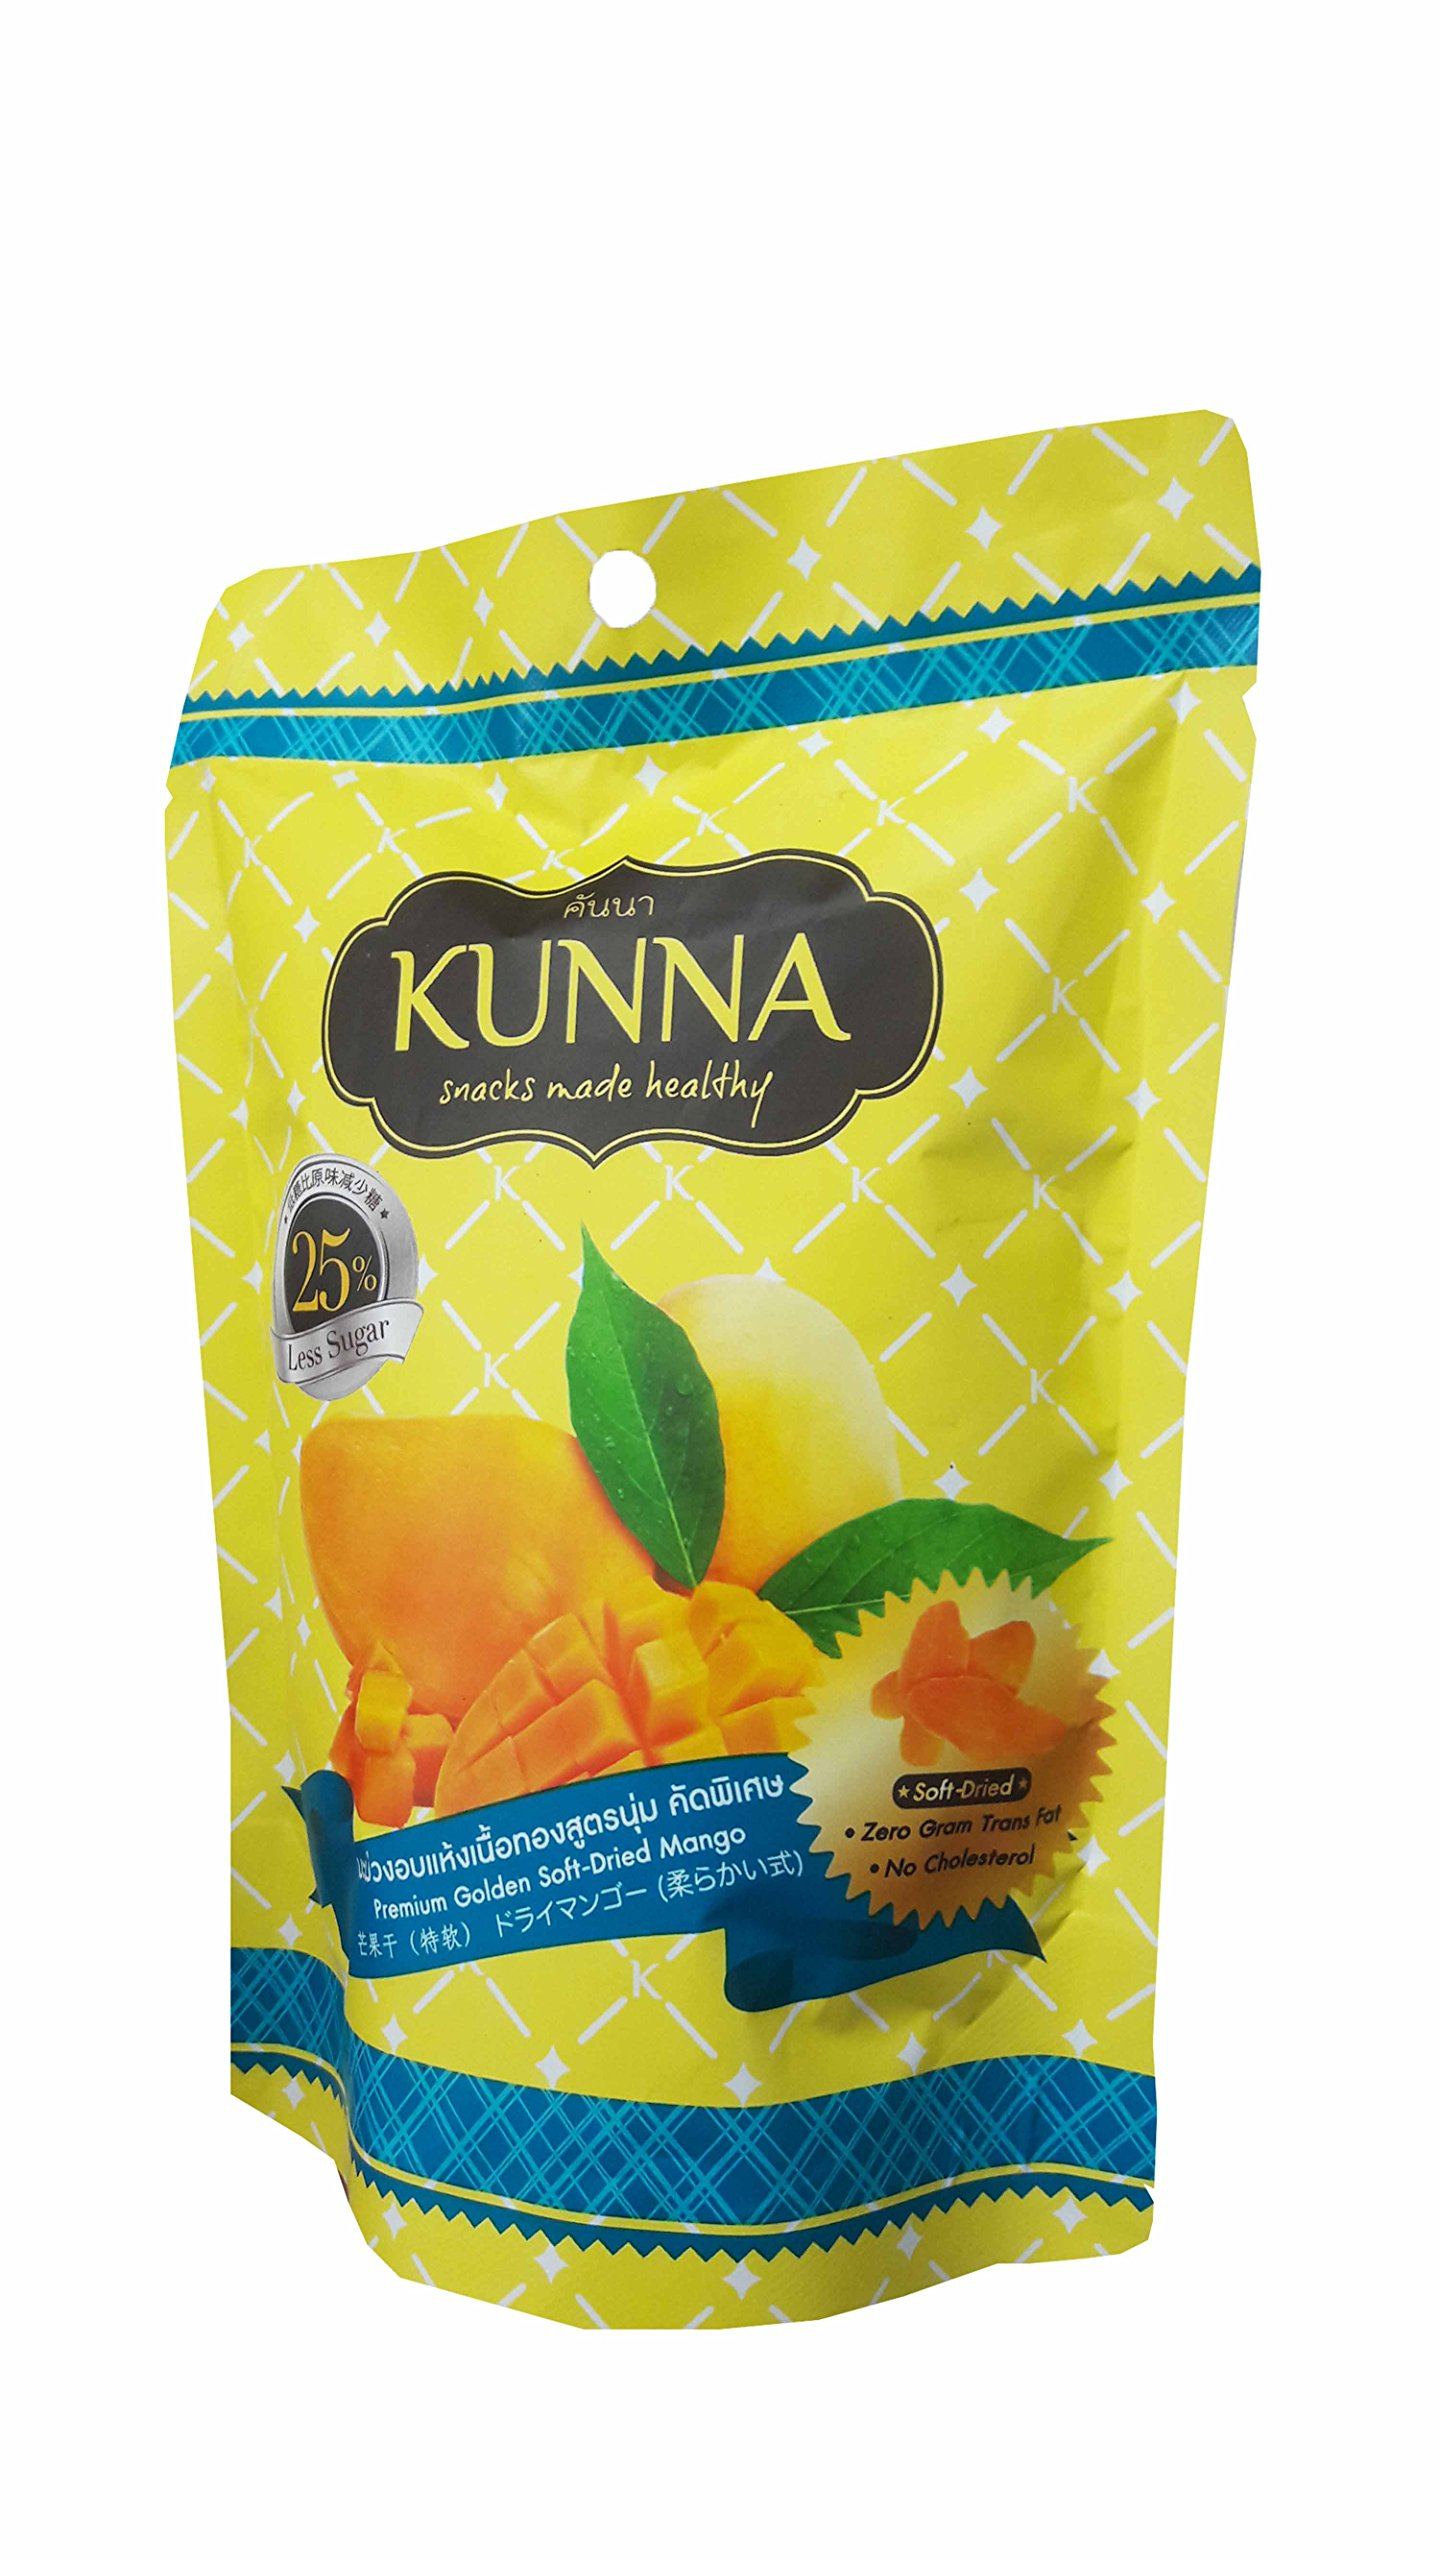 3 Packs of Premium Golden Soft-Dried Mango, snacks made healthy by kunna. Zero gram trans fat, No cholesterol & delicious, premium fruit snack from Thailand) (75 g/pack). by Kunna